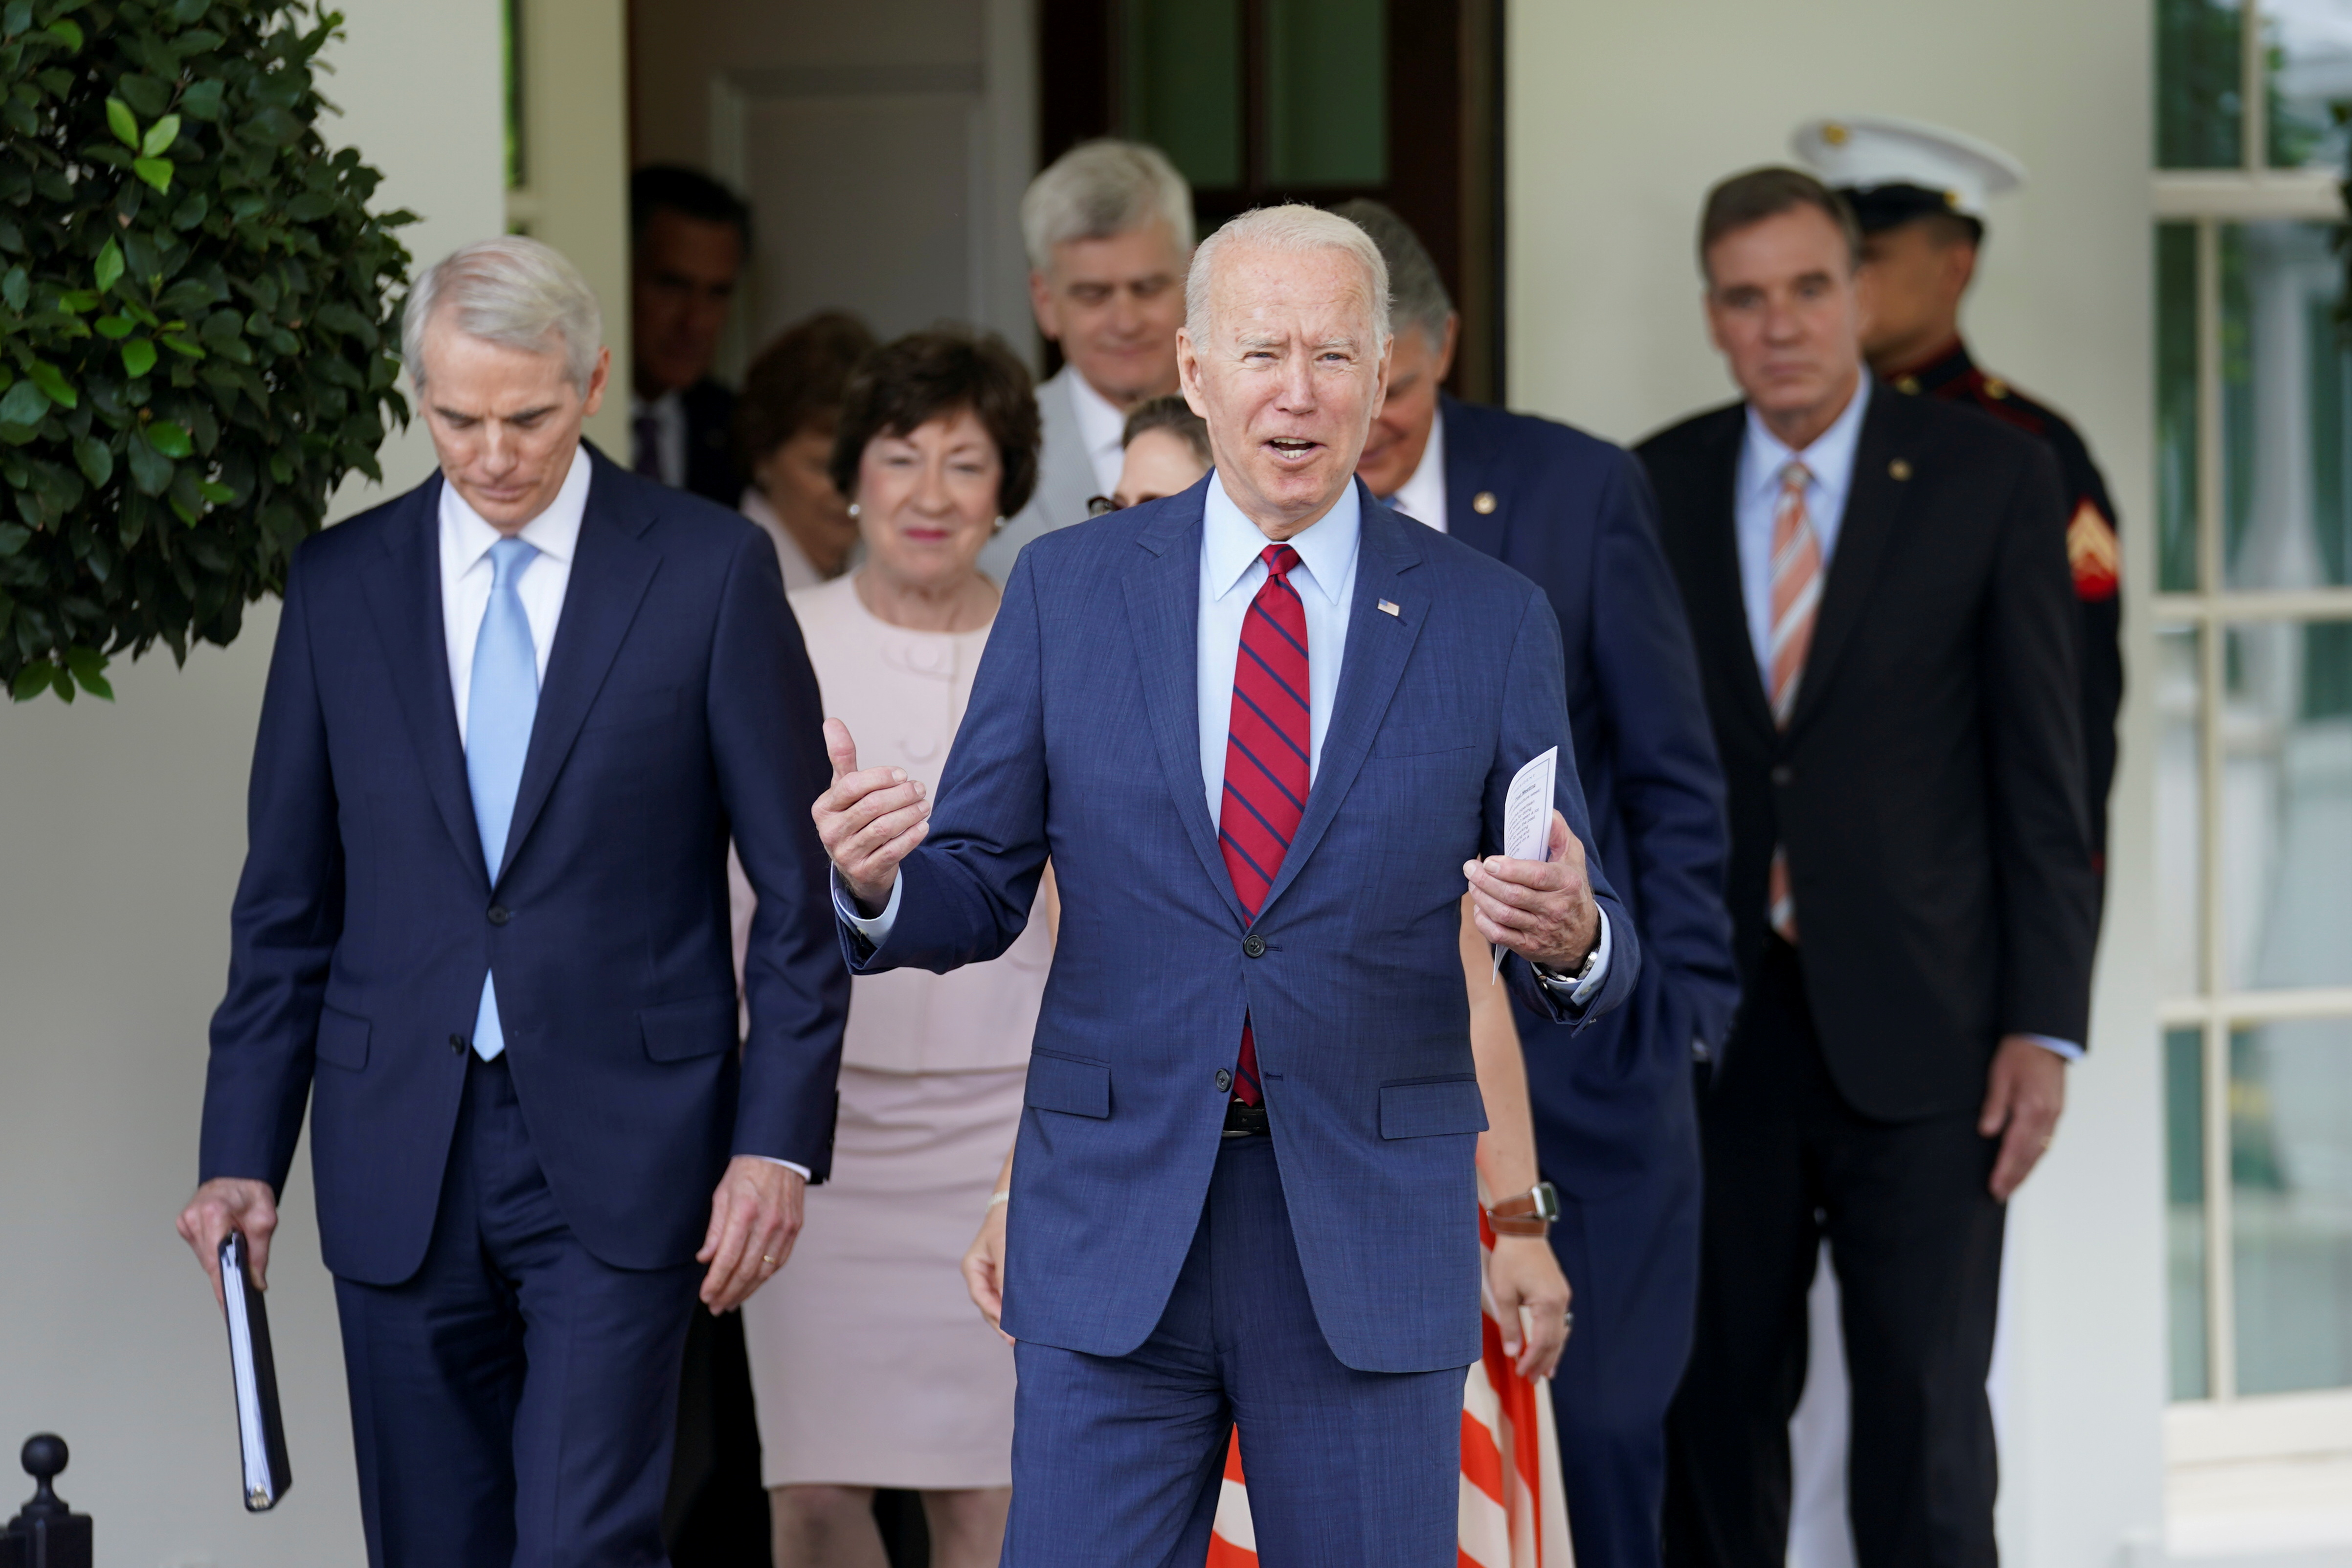 U.S. President Joe Biden exits the West Wing of the White House for talking to the media, following a bipartisan meeting with U.S. senators about the proposed framework for the infrastructure bill, at the White House in Washington, U.S., June 24, 2021. REUTERS/Kevin Lamarque